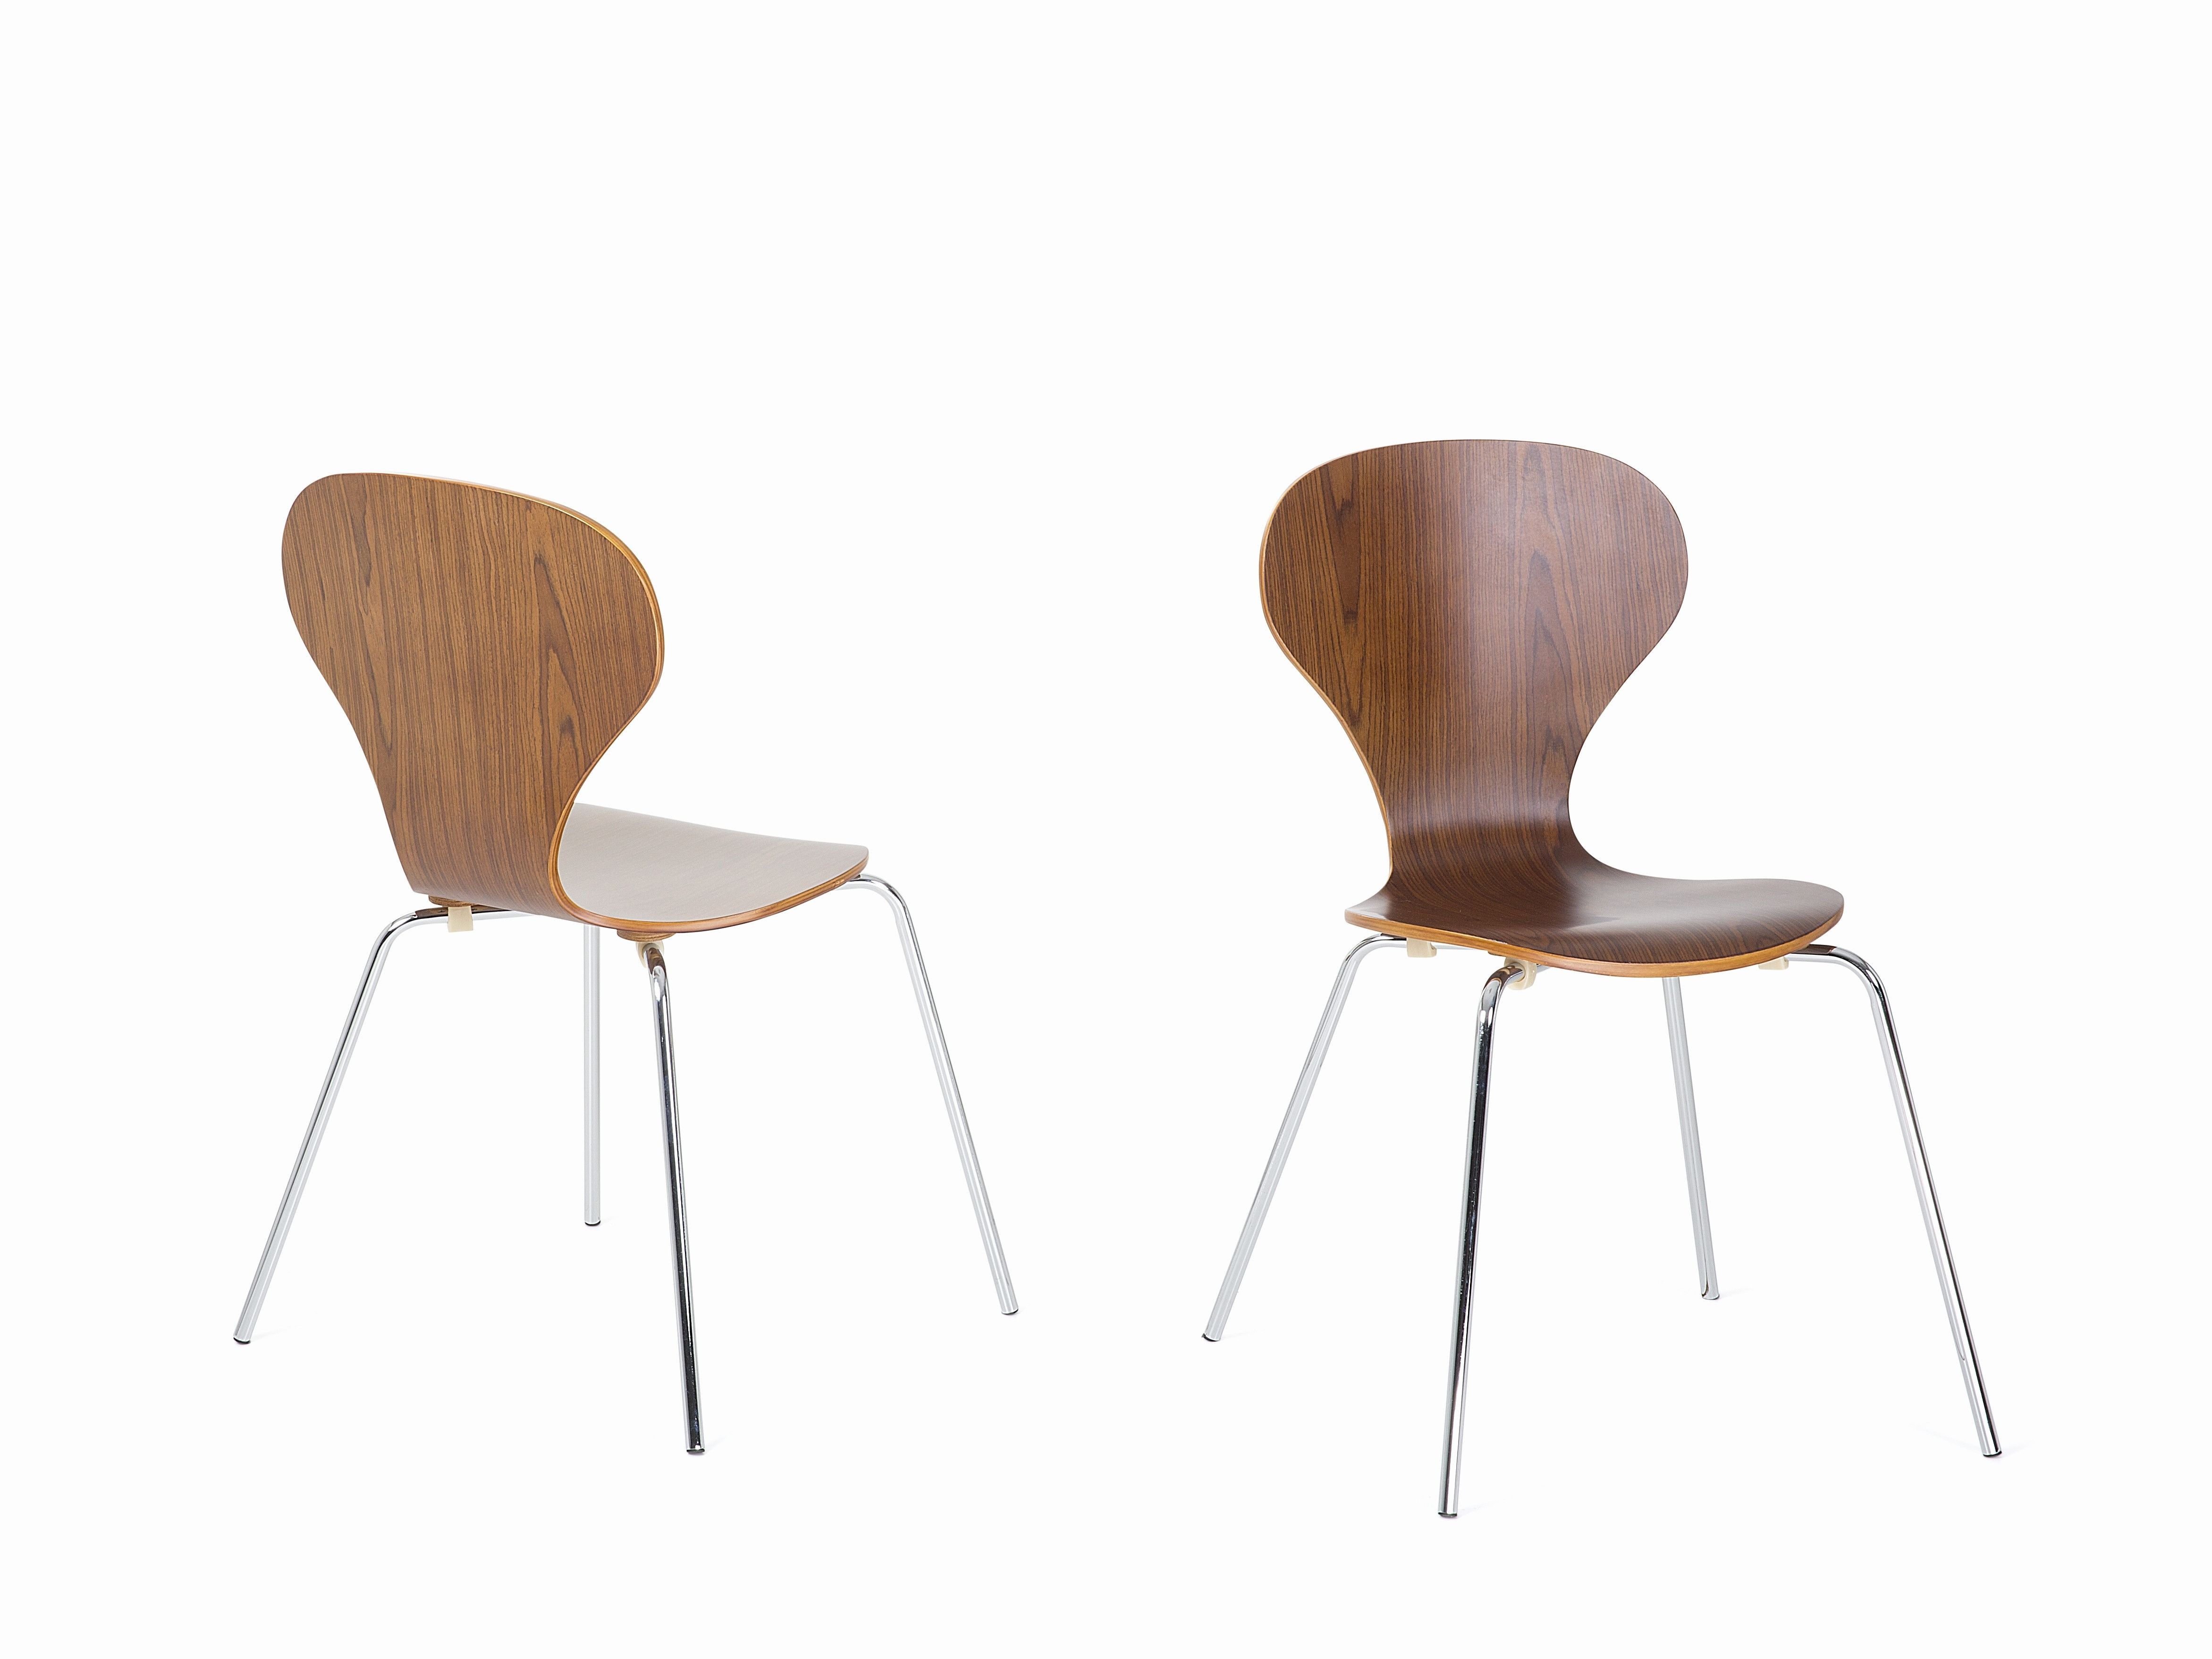 Elegant Tableau Noir Et Blanc Conforama Scandinavian Dining Chairs Dining Chairs Wicker Dining Chairs